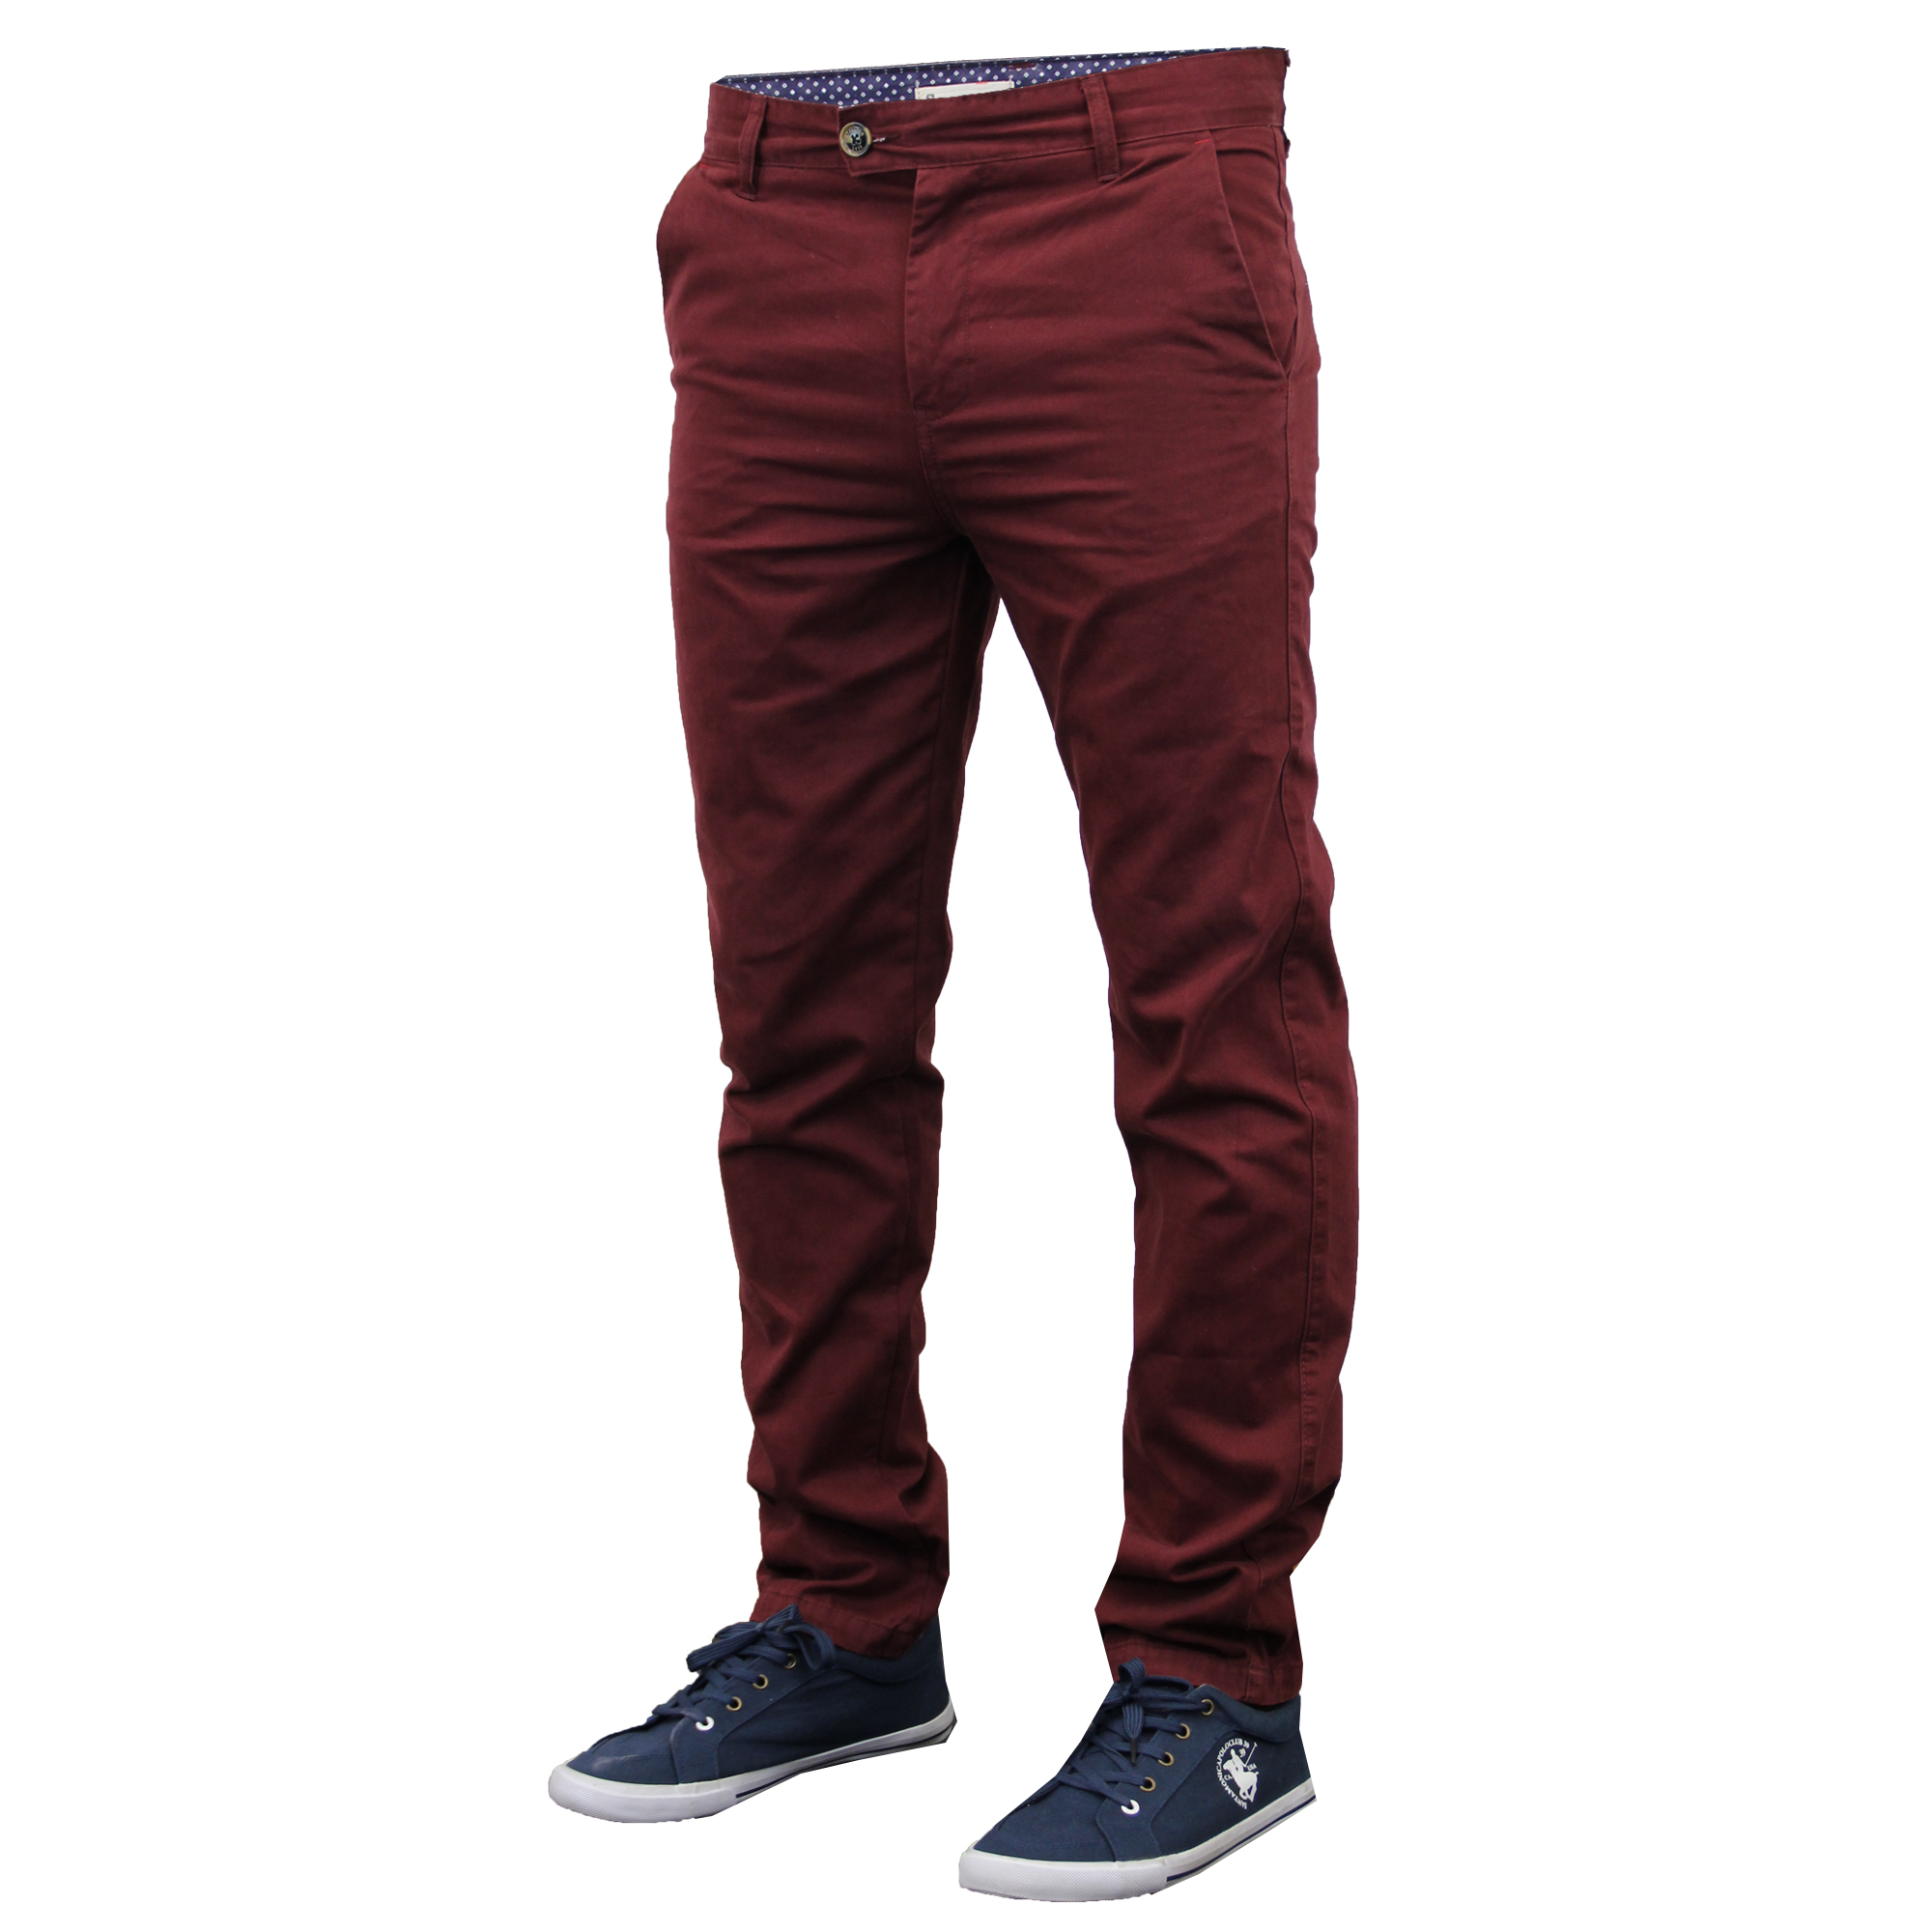 Mens Chino Jeans Stallion Bottoms Slim Fit Trousers Pants Casual Designer New | EBay